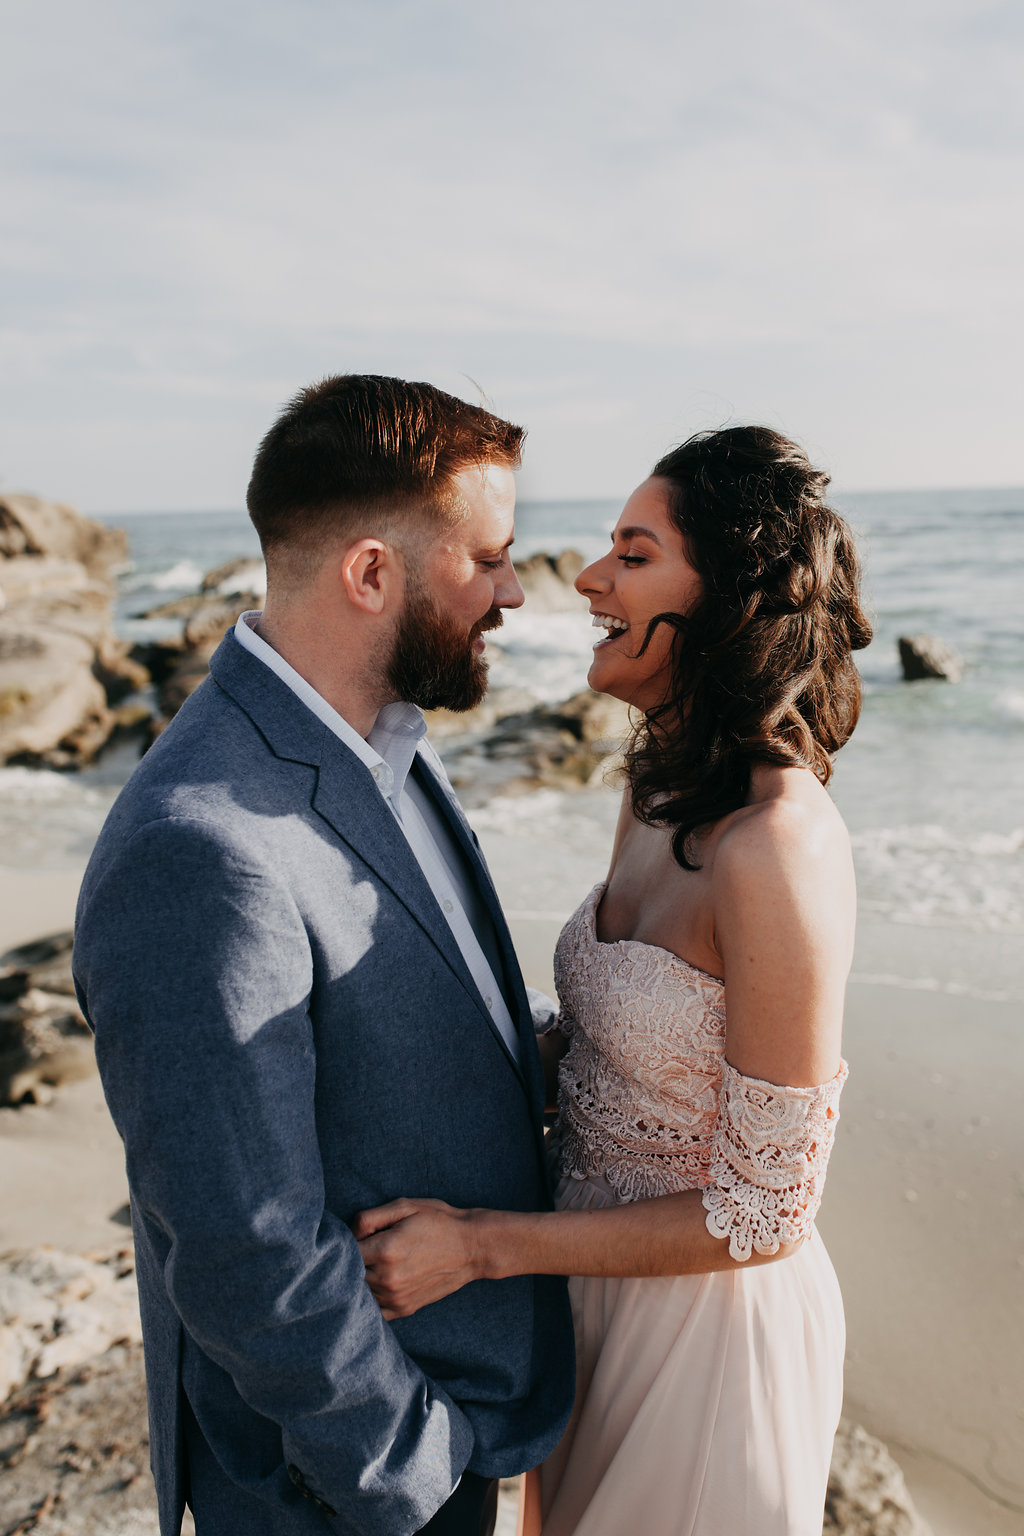 pinkfeatherphotography-Lajollabeach-engagement(4of146).jpg